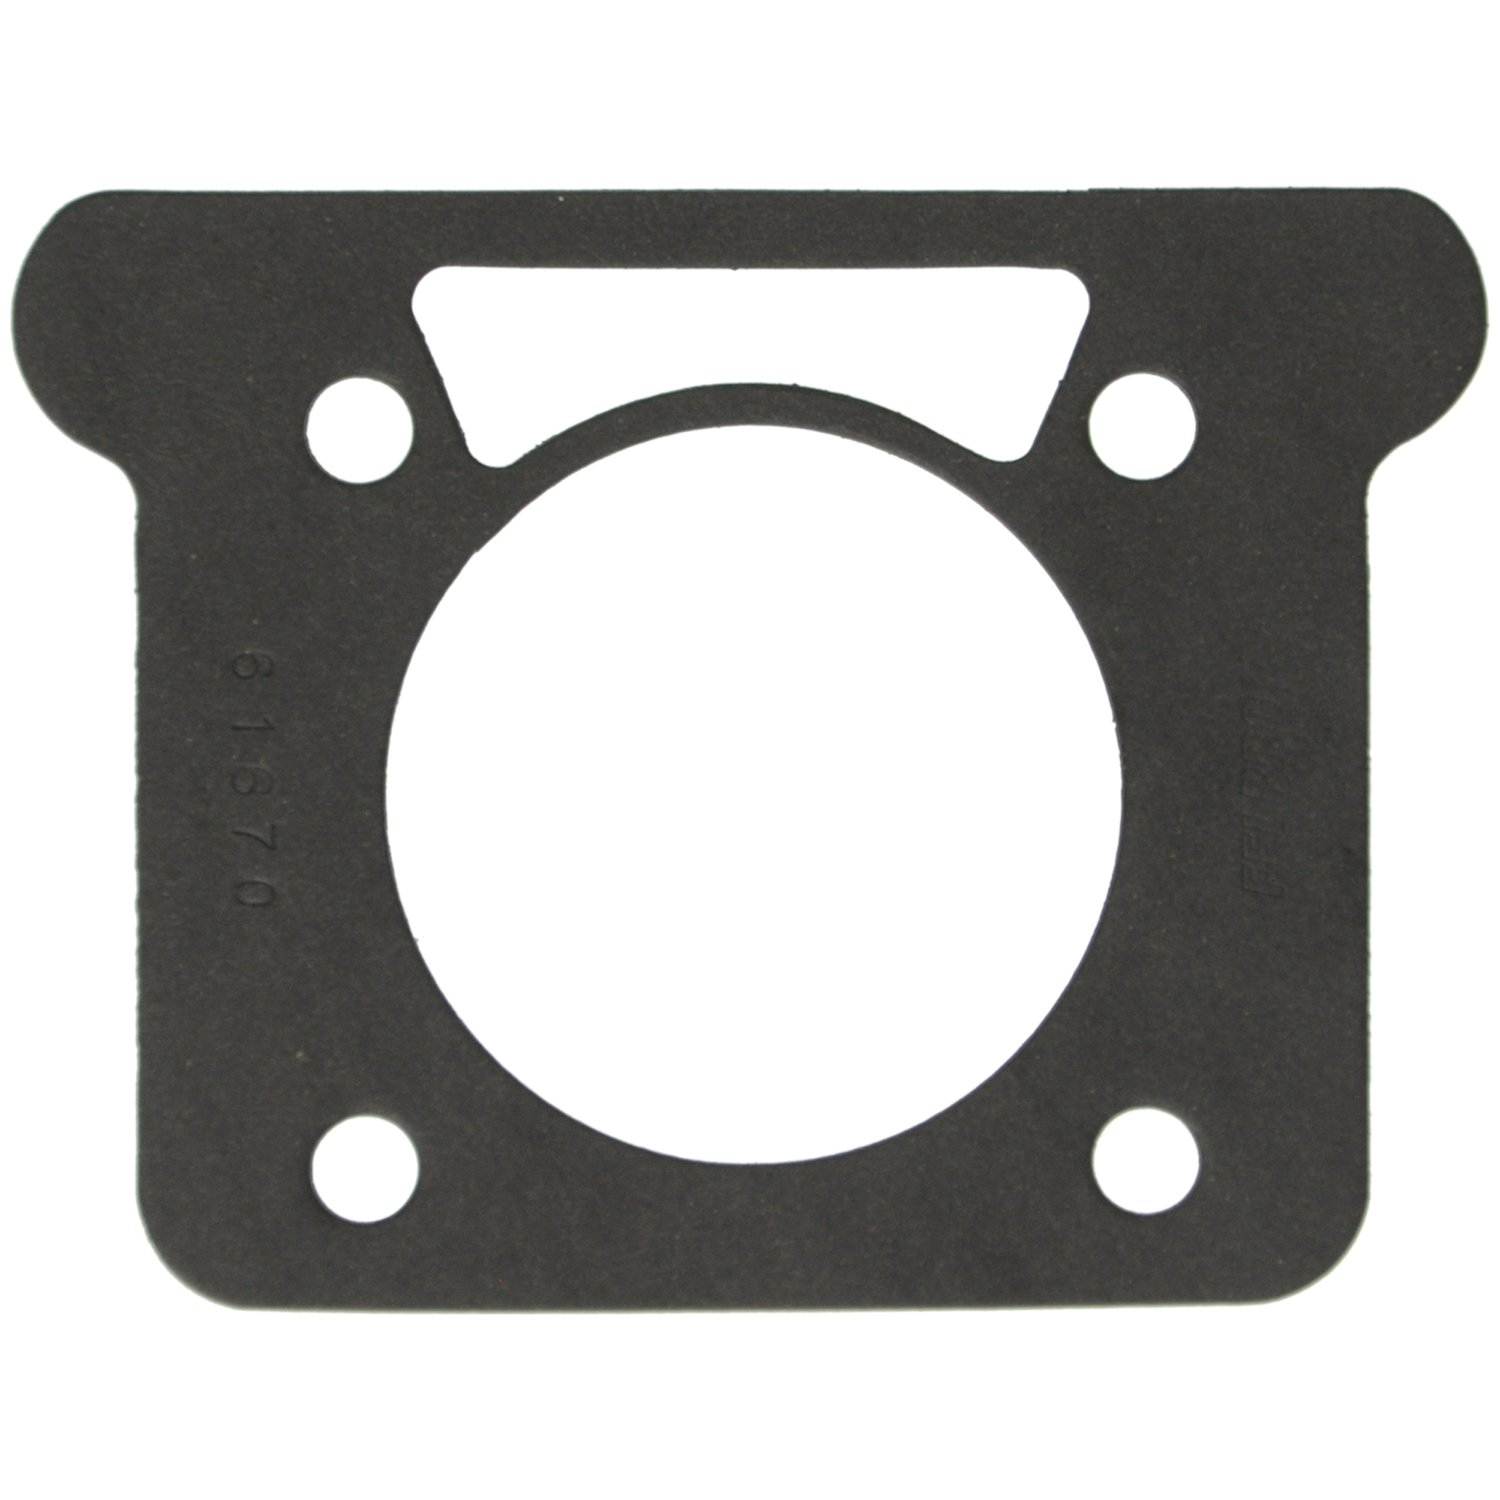 Fel-Pro 61670 Throttle Body Mounting Gasket